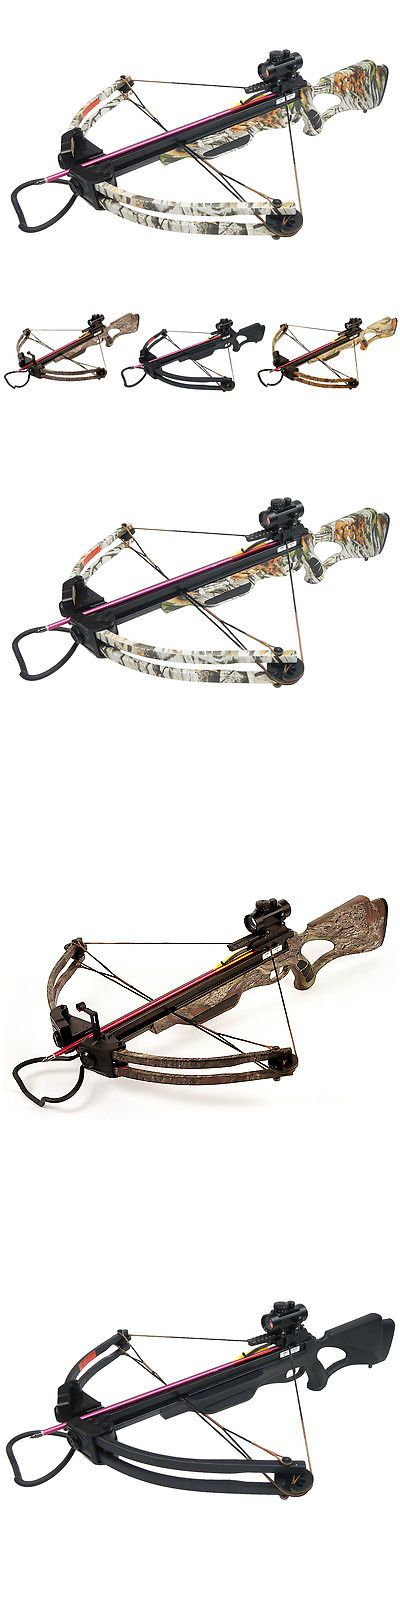 Crossbows 33972: 175 Lb Black Camo Compound Crossbow Bow +Red Dot Scope +All Accessories 150 80 -> BUY IT NOW ONLY: $179.99 on eBay!